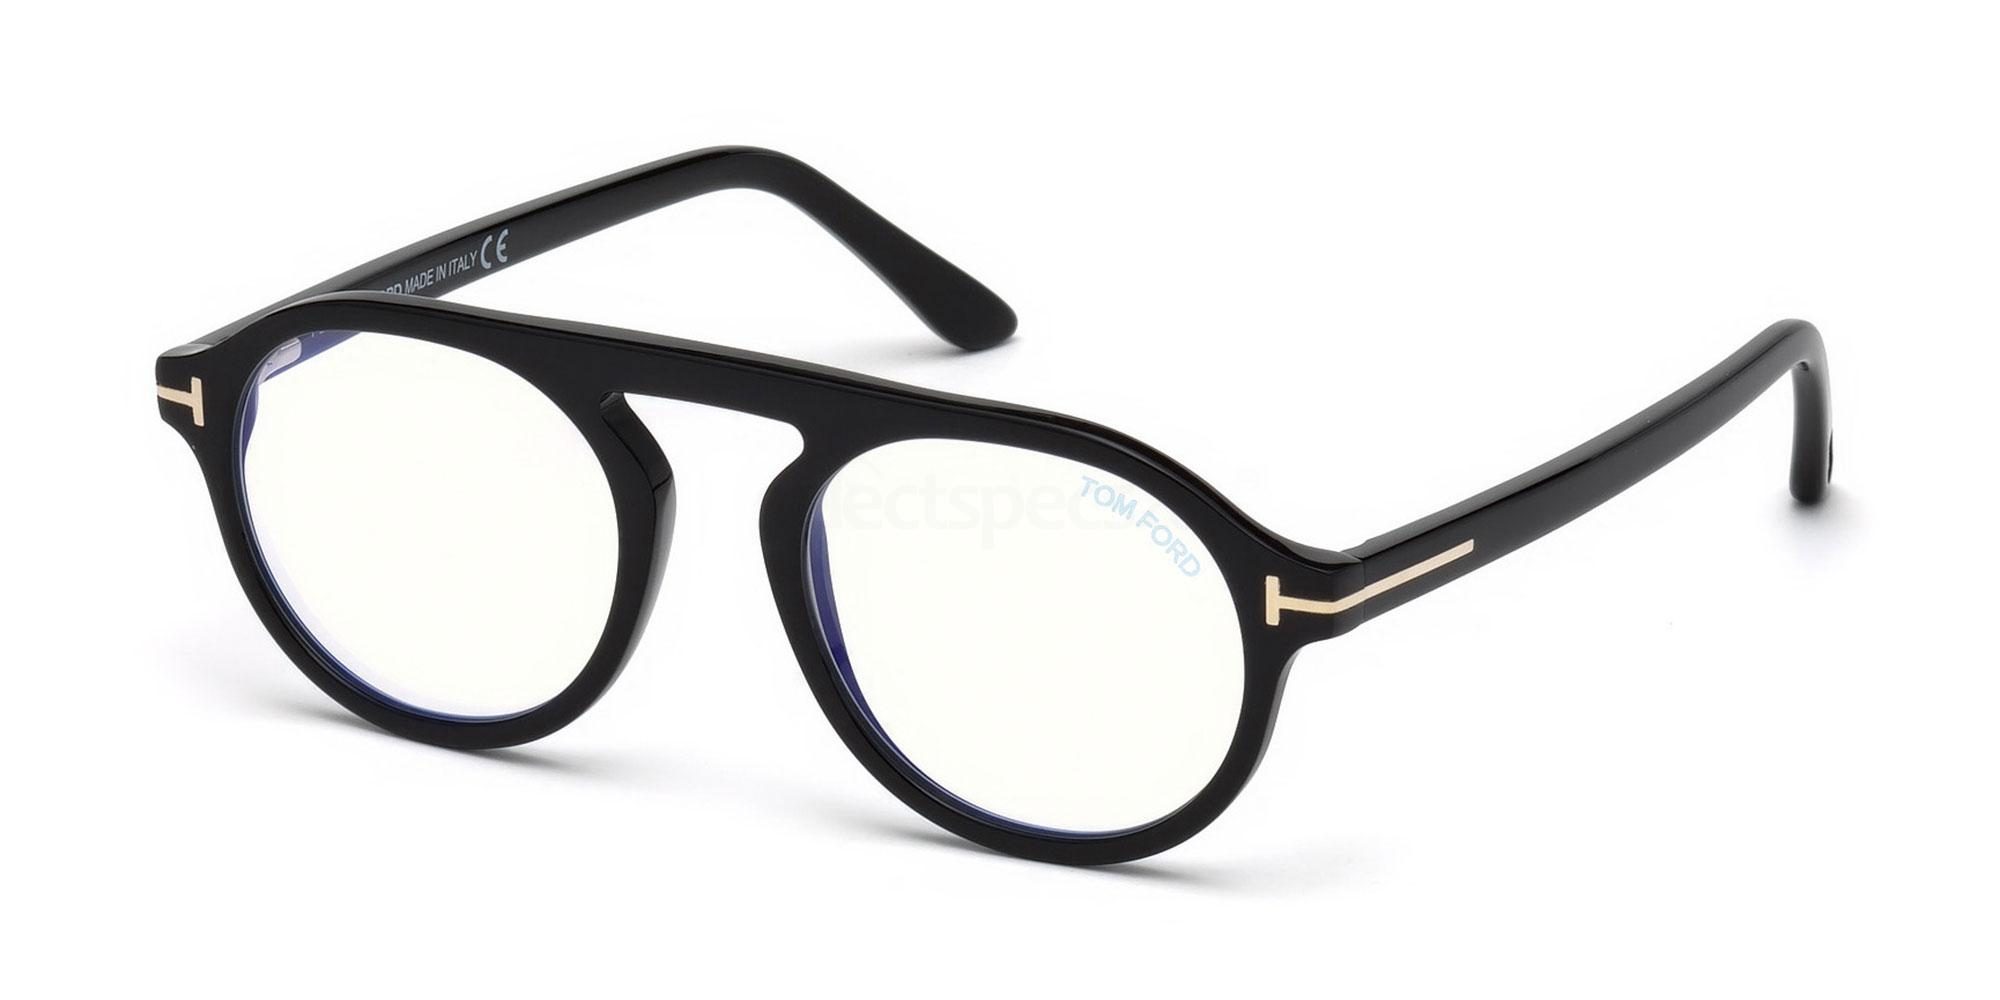 001 FT5534-B Glasses, Tom Ford